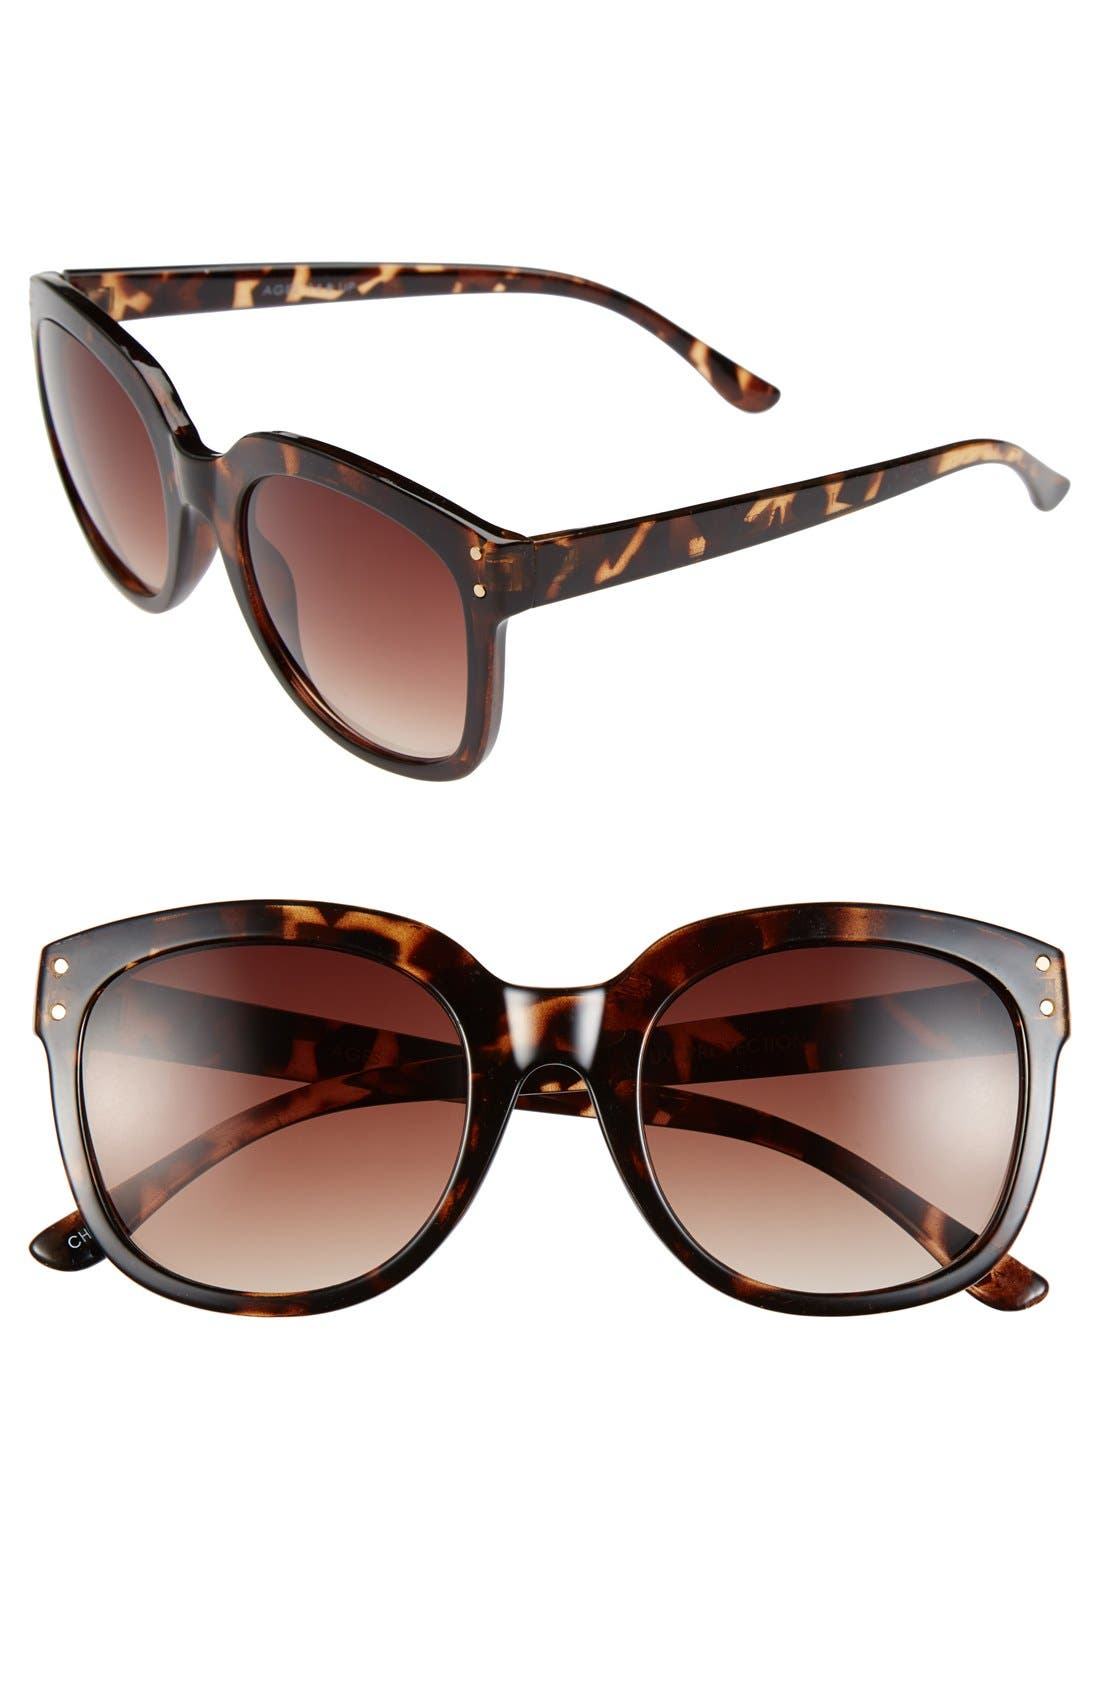 Fantas Eyes 'Habeas Corpus' Sunglasses,                             Main thumbnail 1, color,                             203